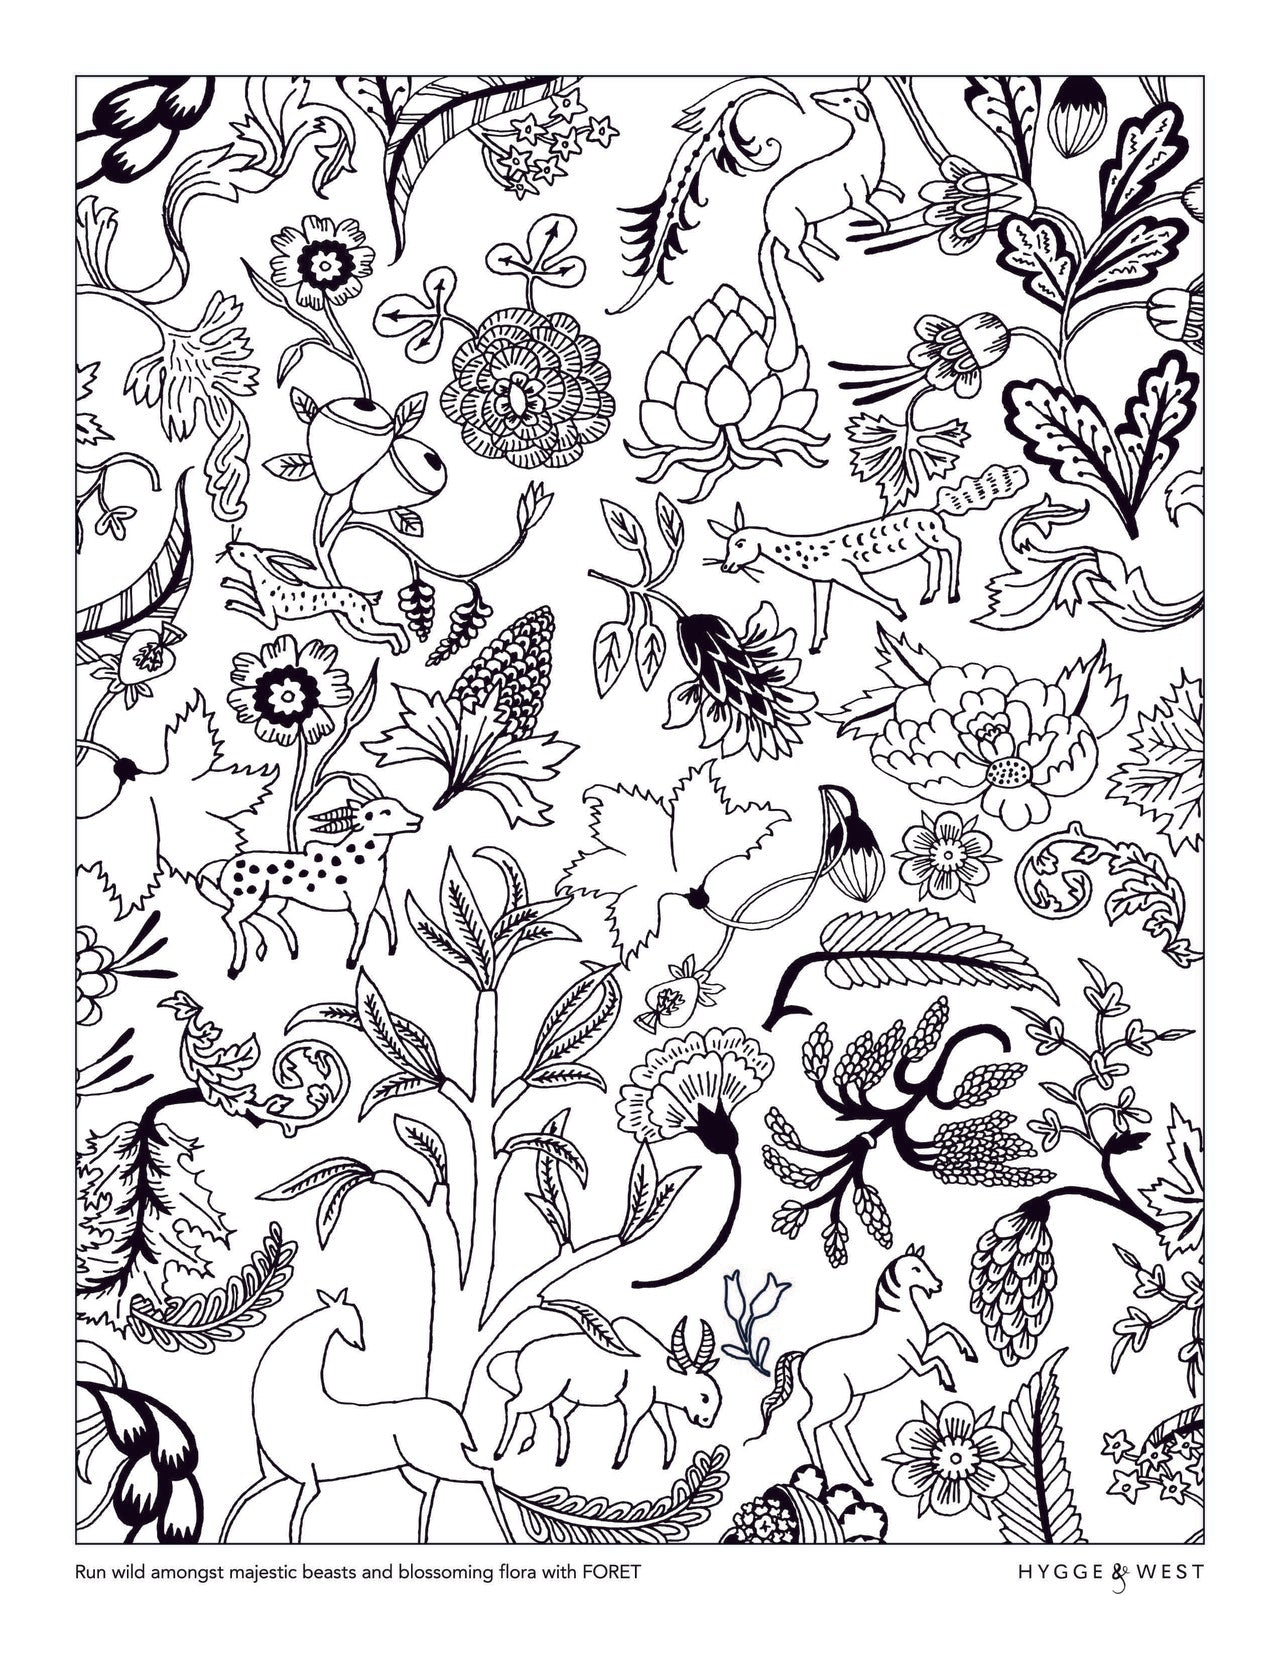 Foret pattern coloring page | Julia Rothman | modern wallpaper | Hygge & West